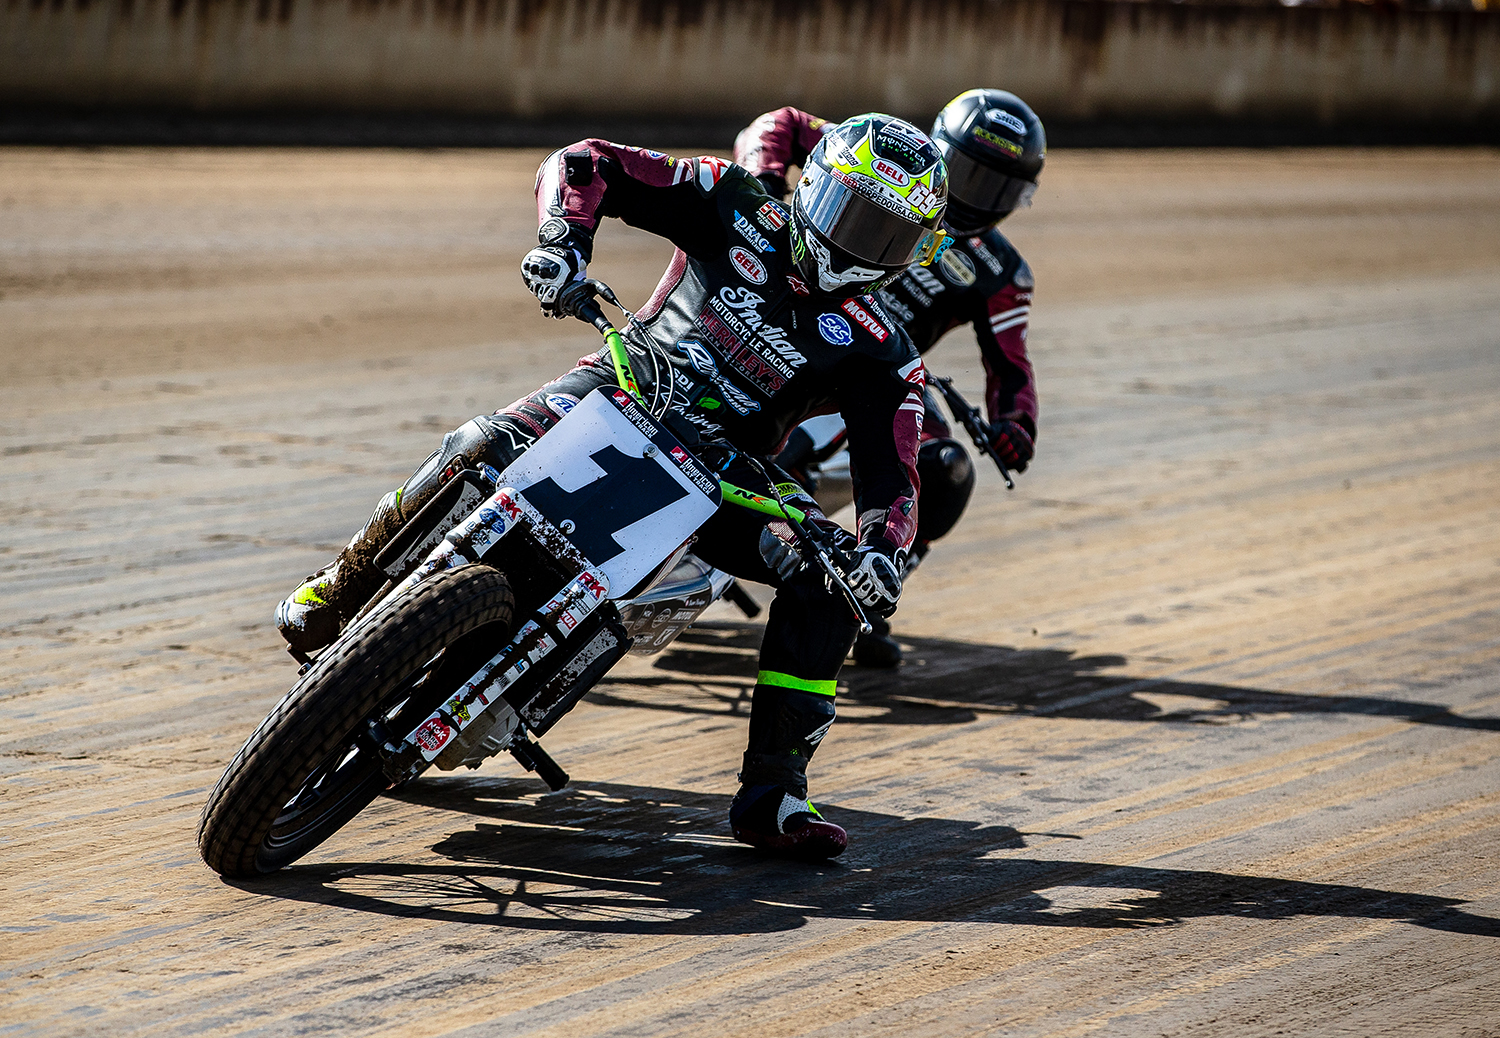 Jared Mees slides through turn one on his Indian Scout FTR750 leading the field during the American Flat Track Springfield Mile II at the Illinois State Fairgrounds, Sunday, Sept. 2, 2018, in Springfield, Ill. [Justin L. Fowler/The State Journal-Register]